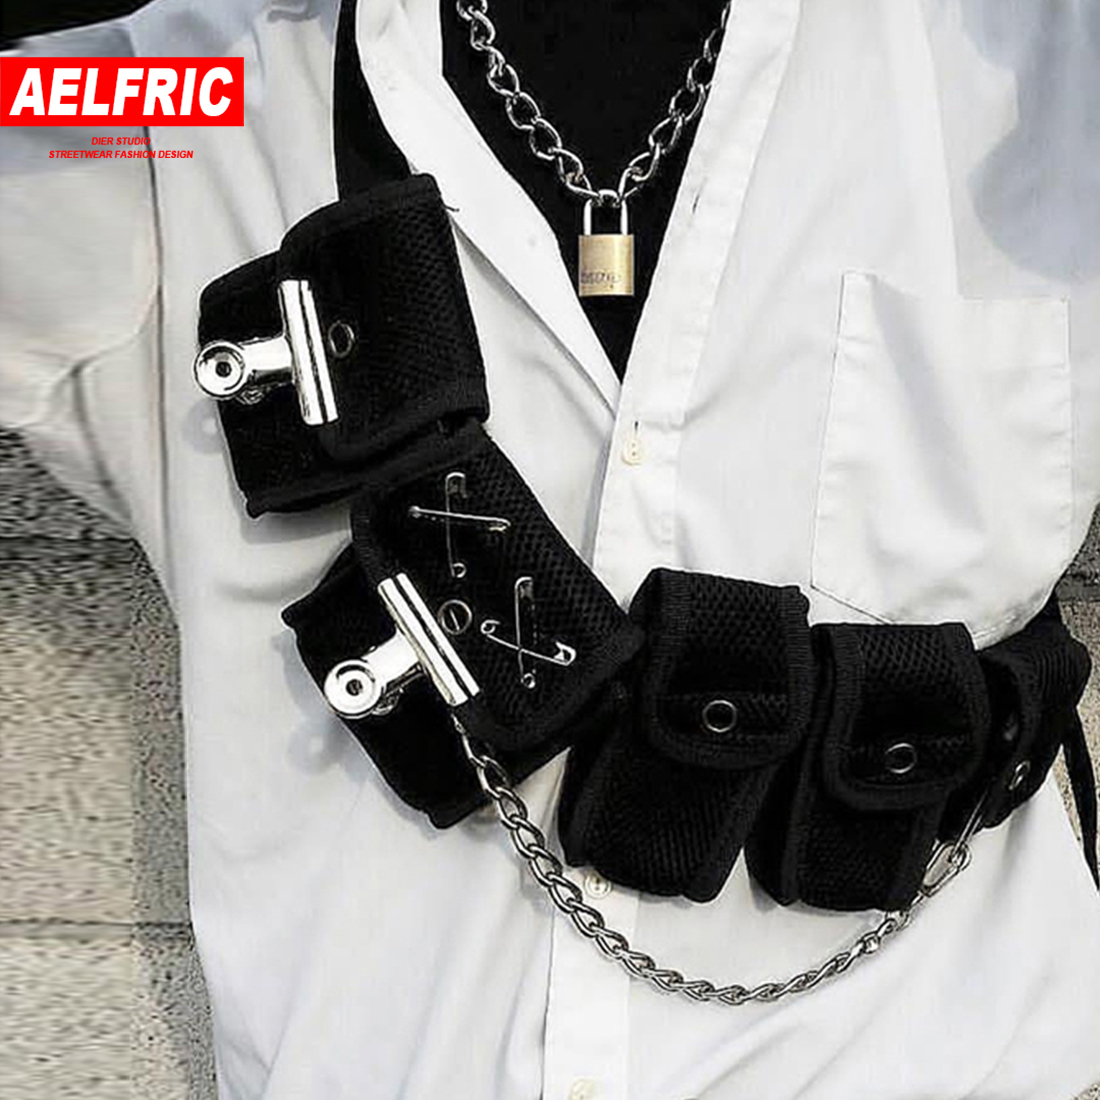 AELFRIC Fashion Streetwear Waist Chest Bag Men Women Mesh Tactical Package 5 Pockets Hip Hop Waist Packs Waist Packs Belt Bag